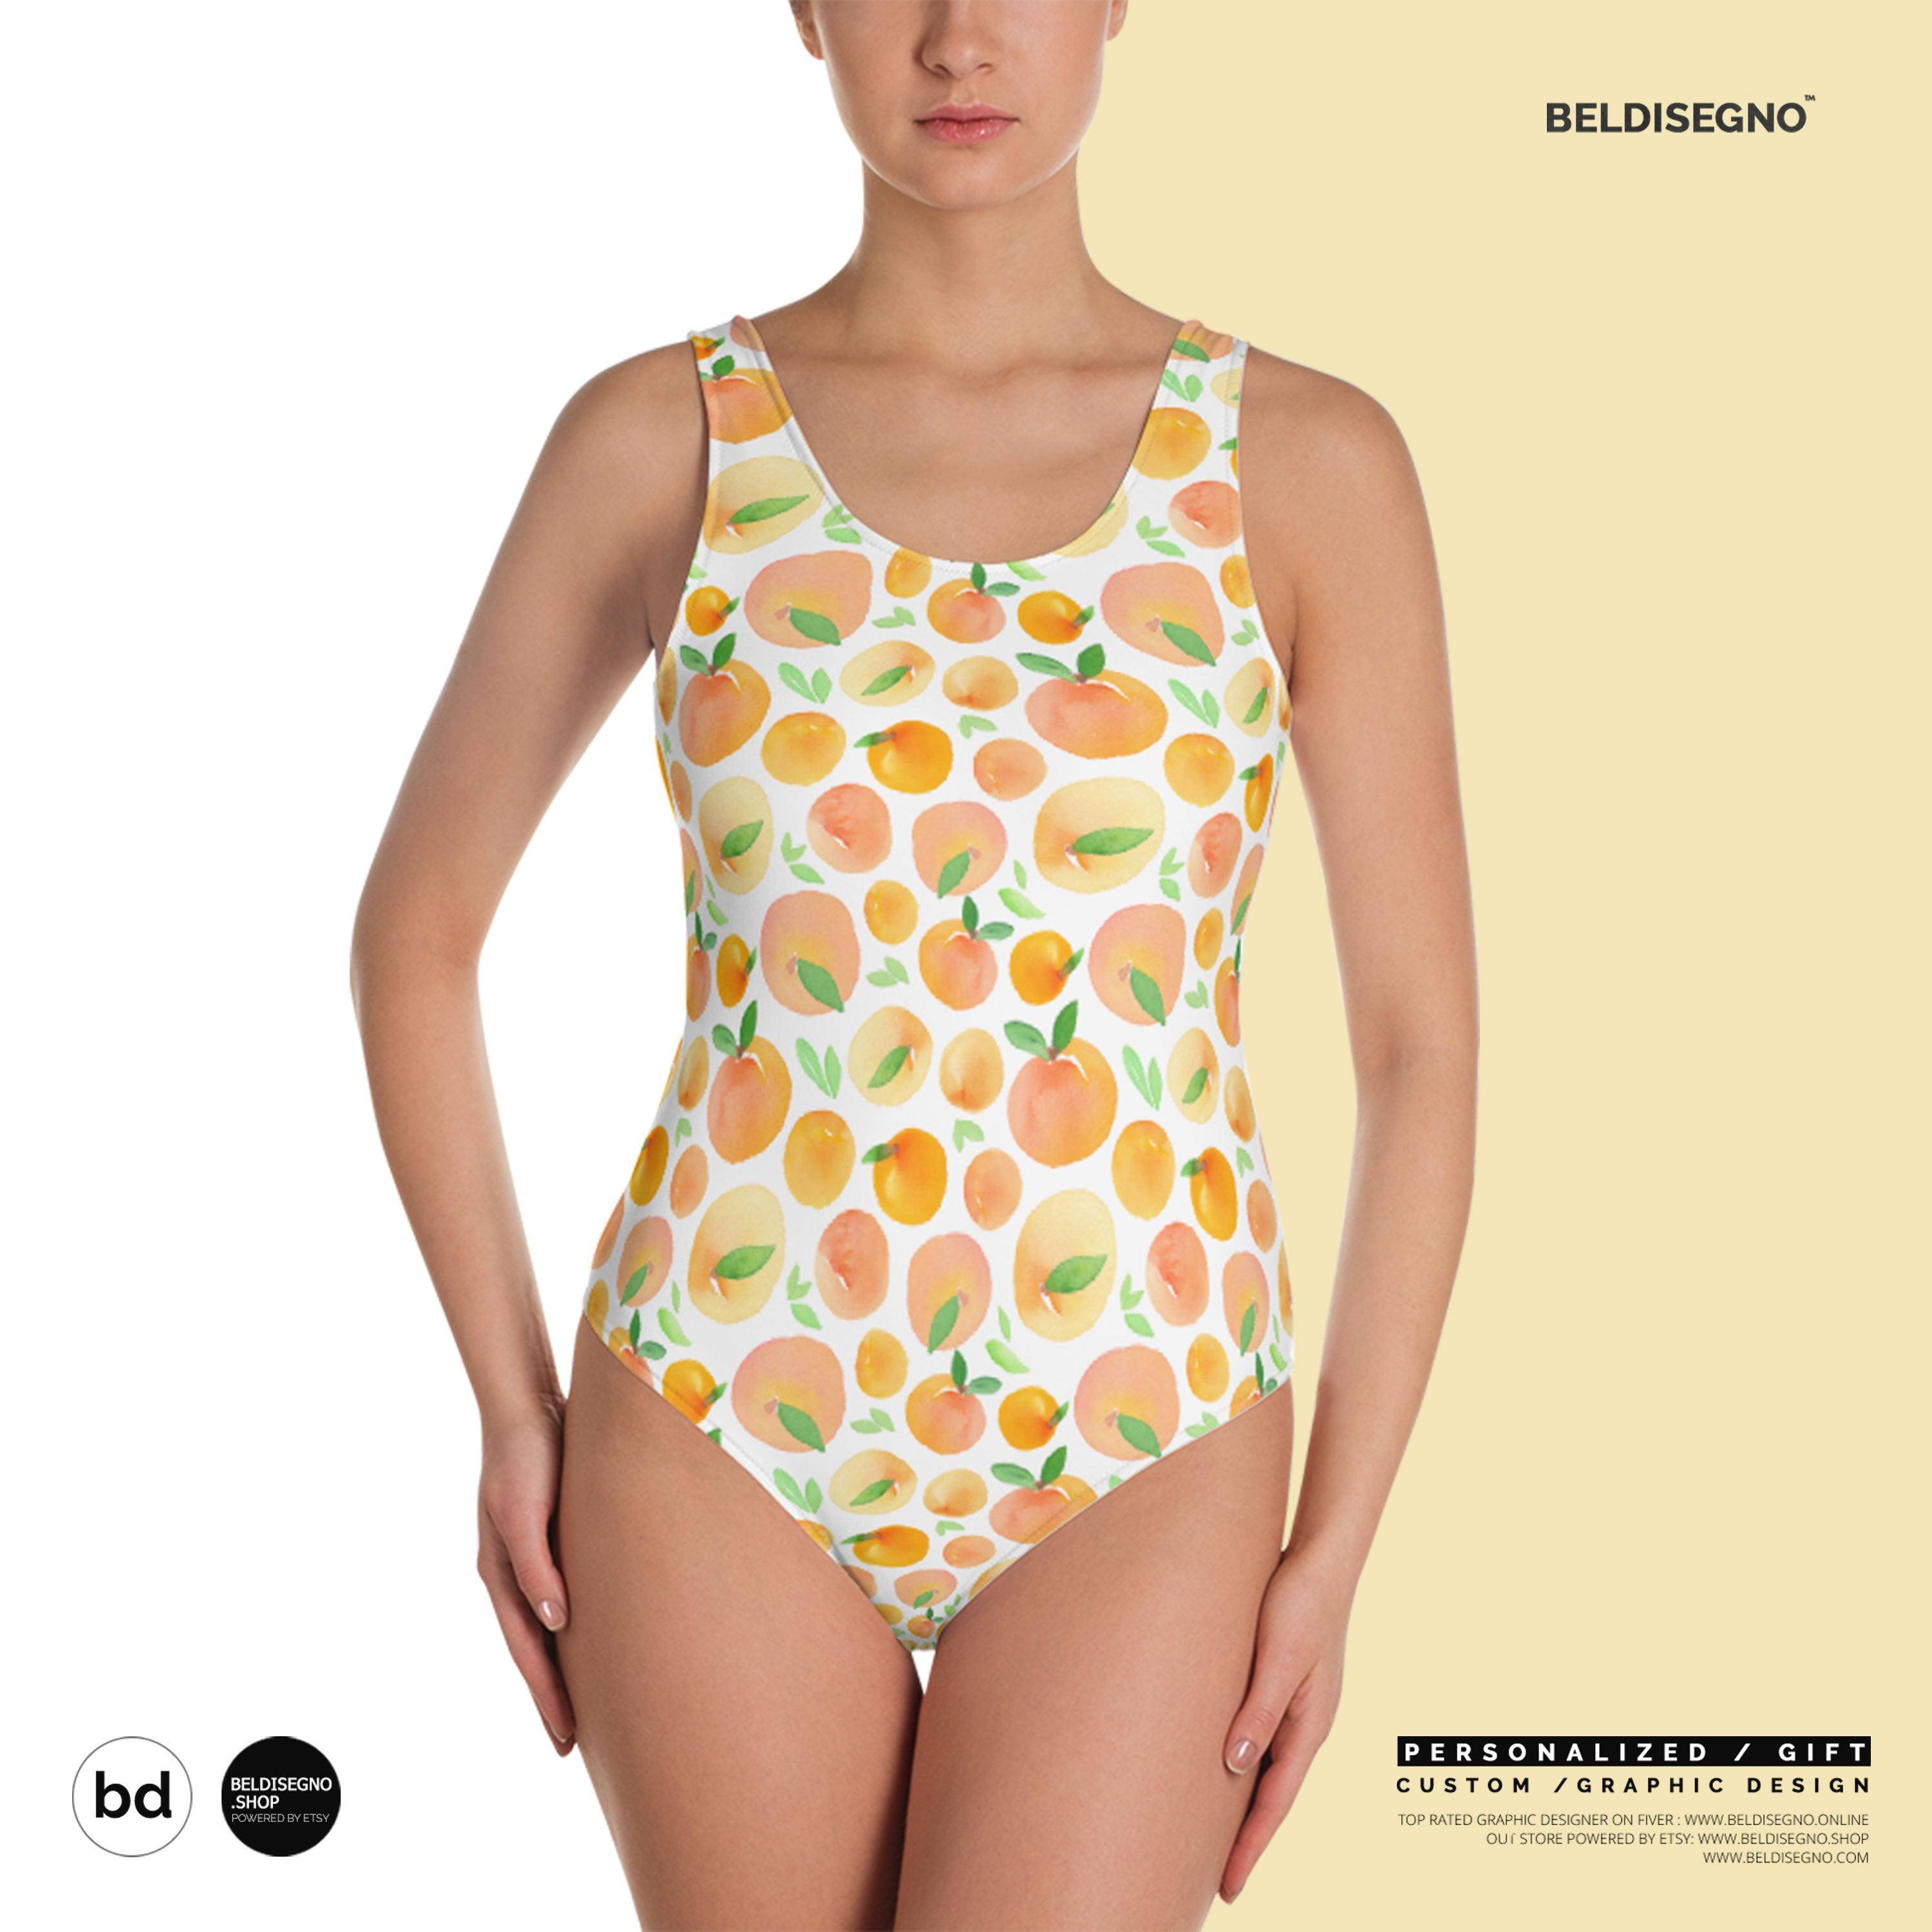 One-Piece Swimsuit - Personalized color Custom design Swimsuit with saying quote face photo images dog cat animal pattern   BelDisegno